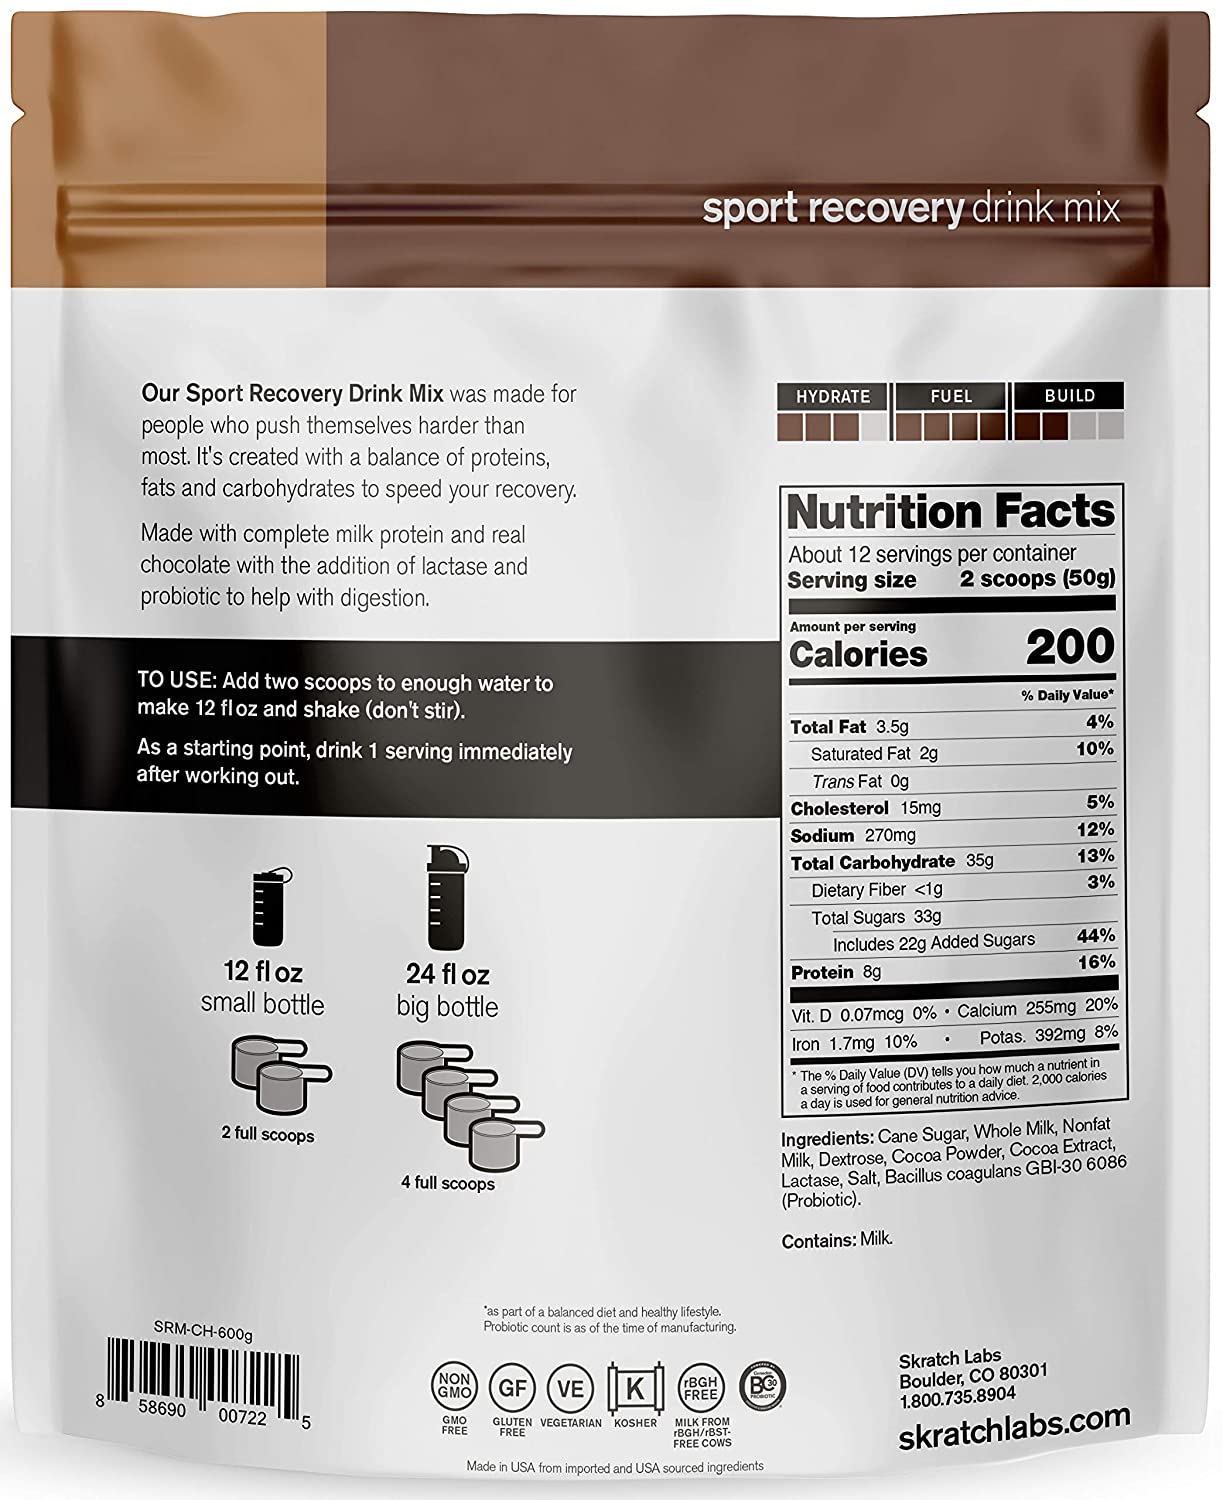 SKRATCH LABS Sport Recovery Drink Mix with Chocolate, 21.2 oz, 12 servings with Complete Milk Protein of Casein and Whey and Probiotics, Gluten Free, Kosher, Natural, Vegetarian